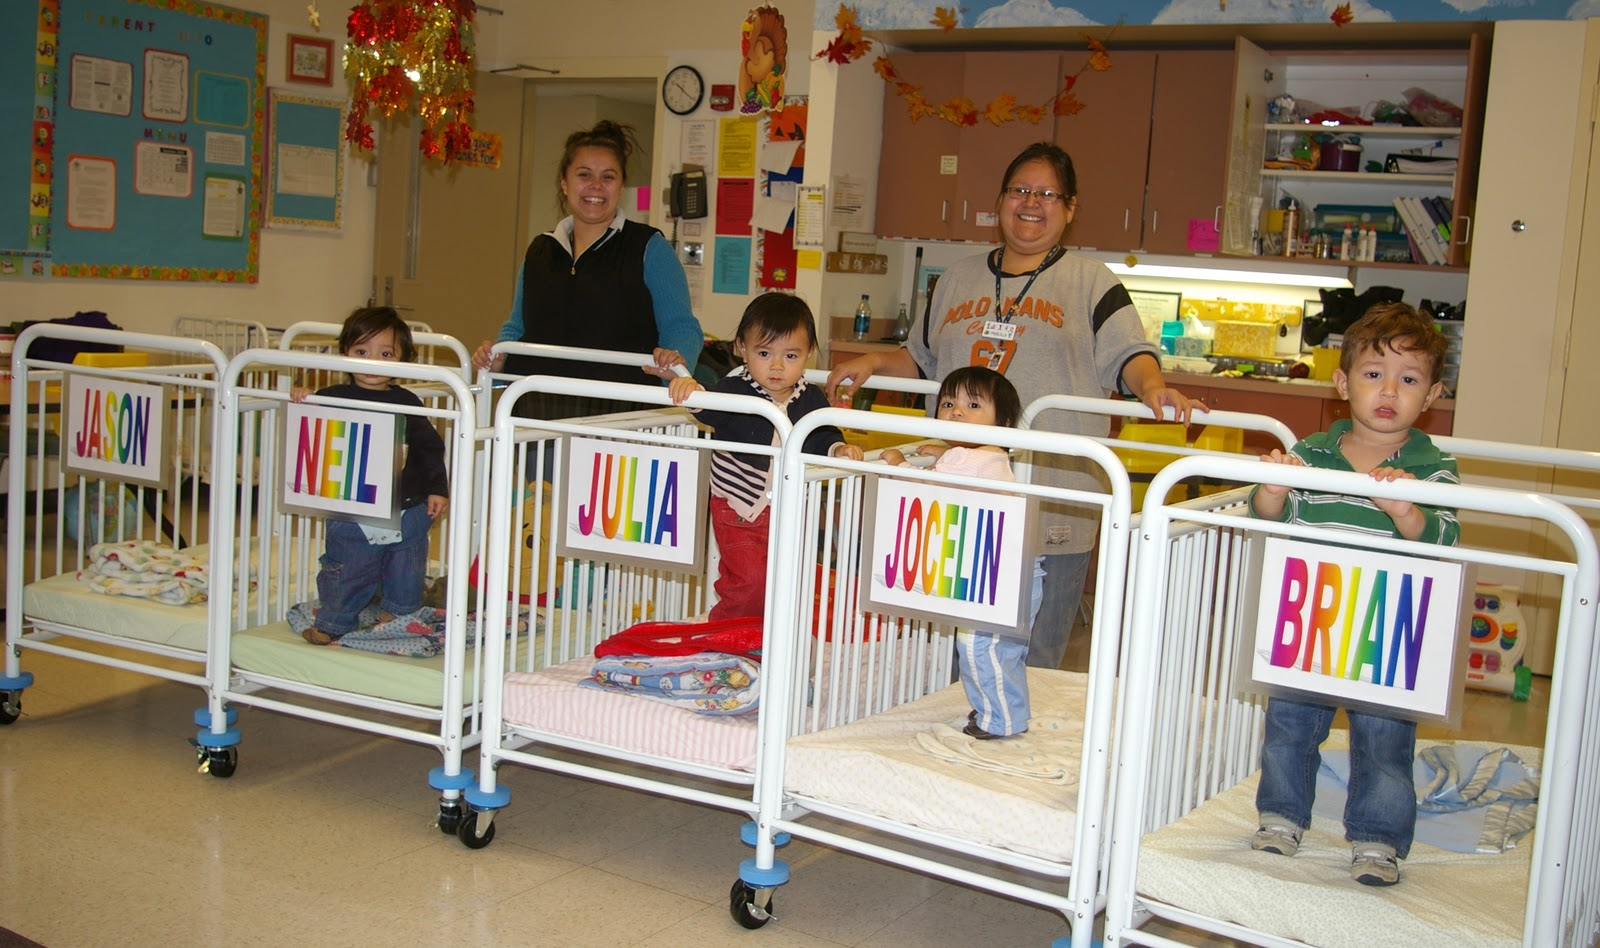 Baby cribs for daycare centers - Keeping Babies Safe Kbs Has Just Donated 12 Brand New Cribs To The Millicent Fenwick Day Care Center At The Y These Cribs Meet The New Current Standards